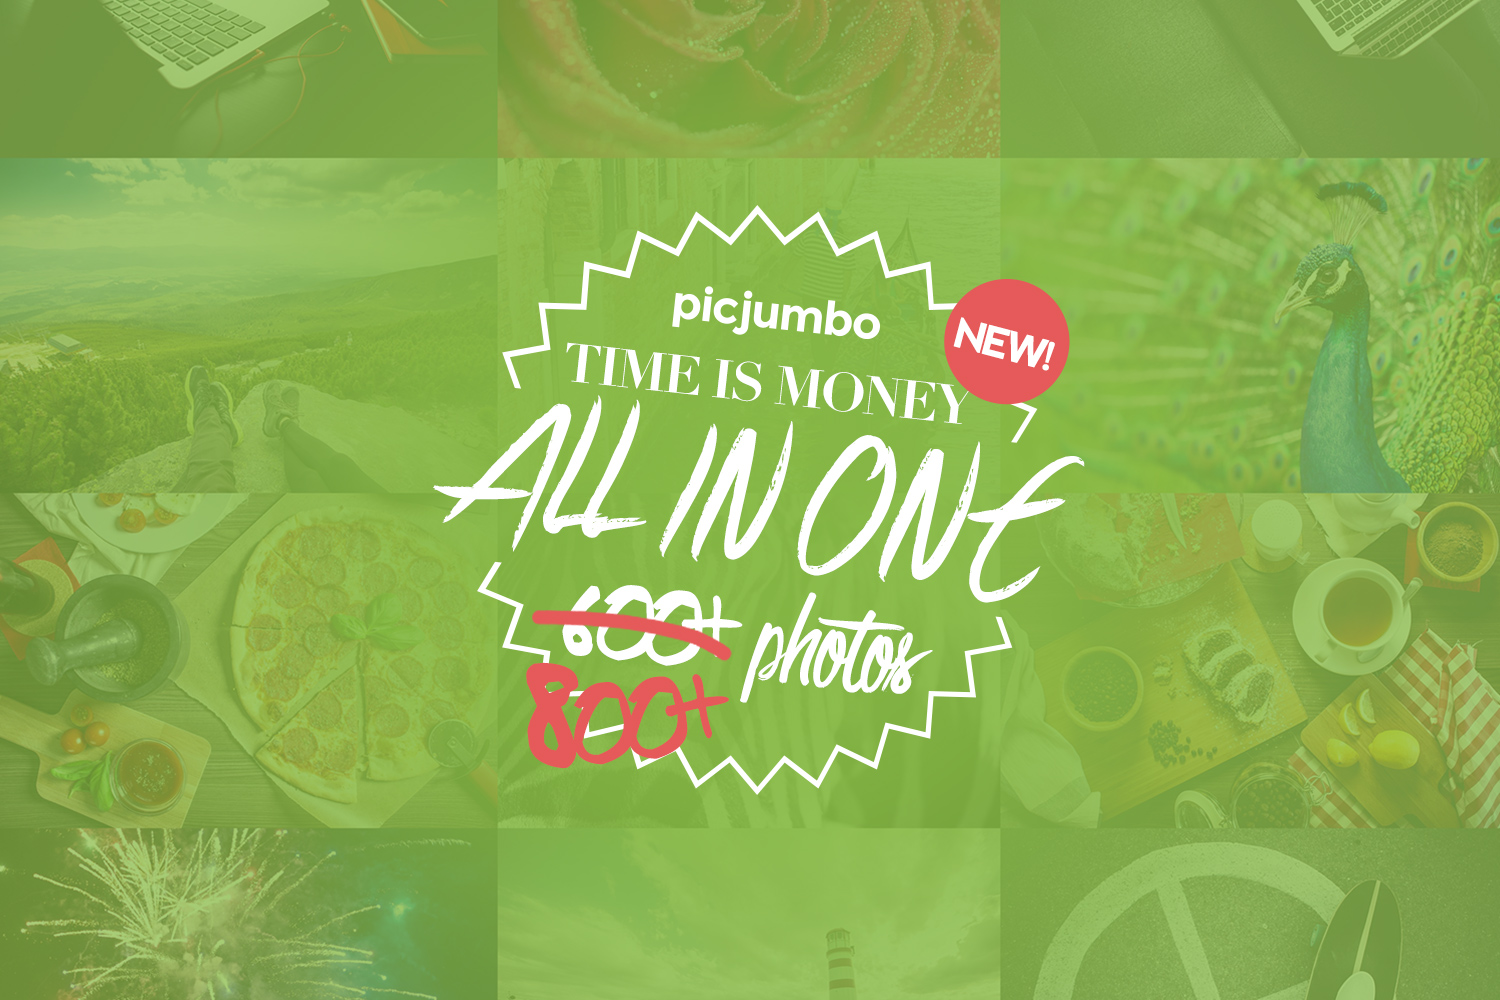 New version of All in One Pack is here: 800+ images! — picjumbo BLOG